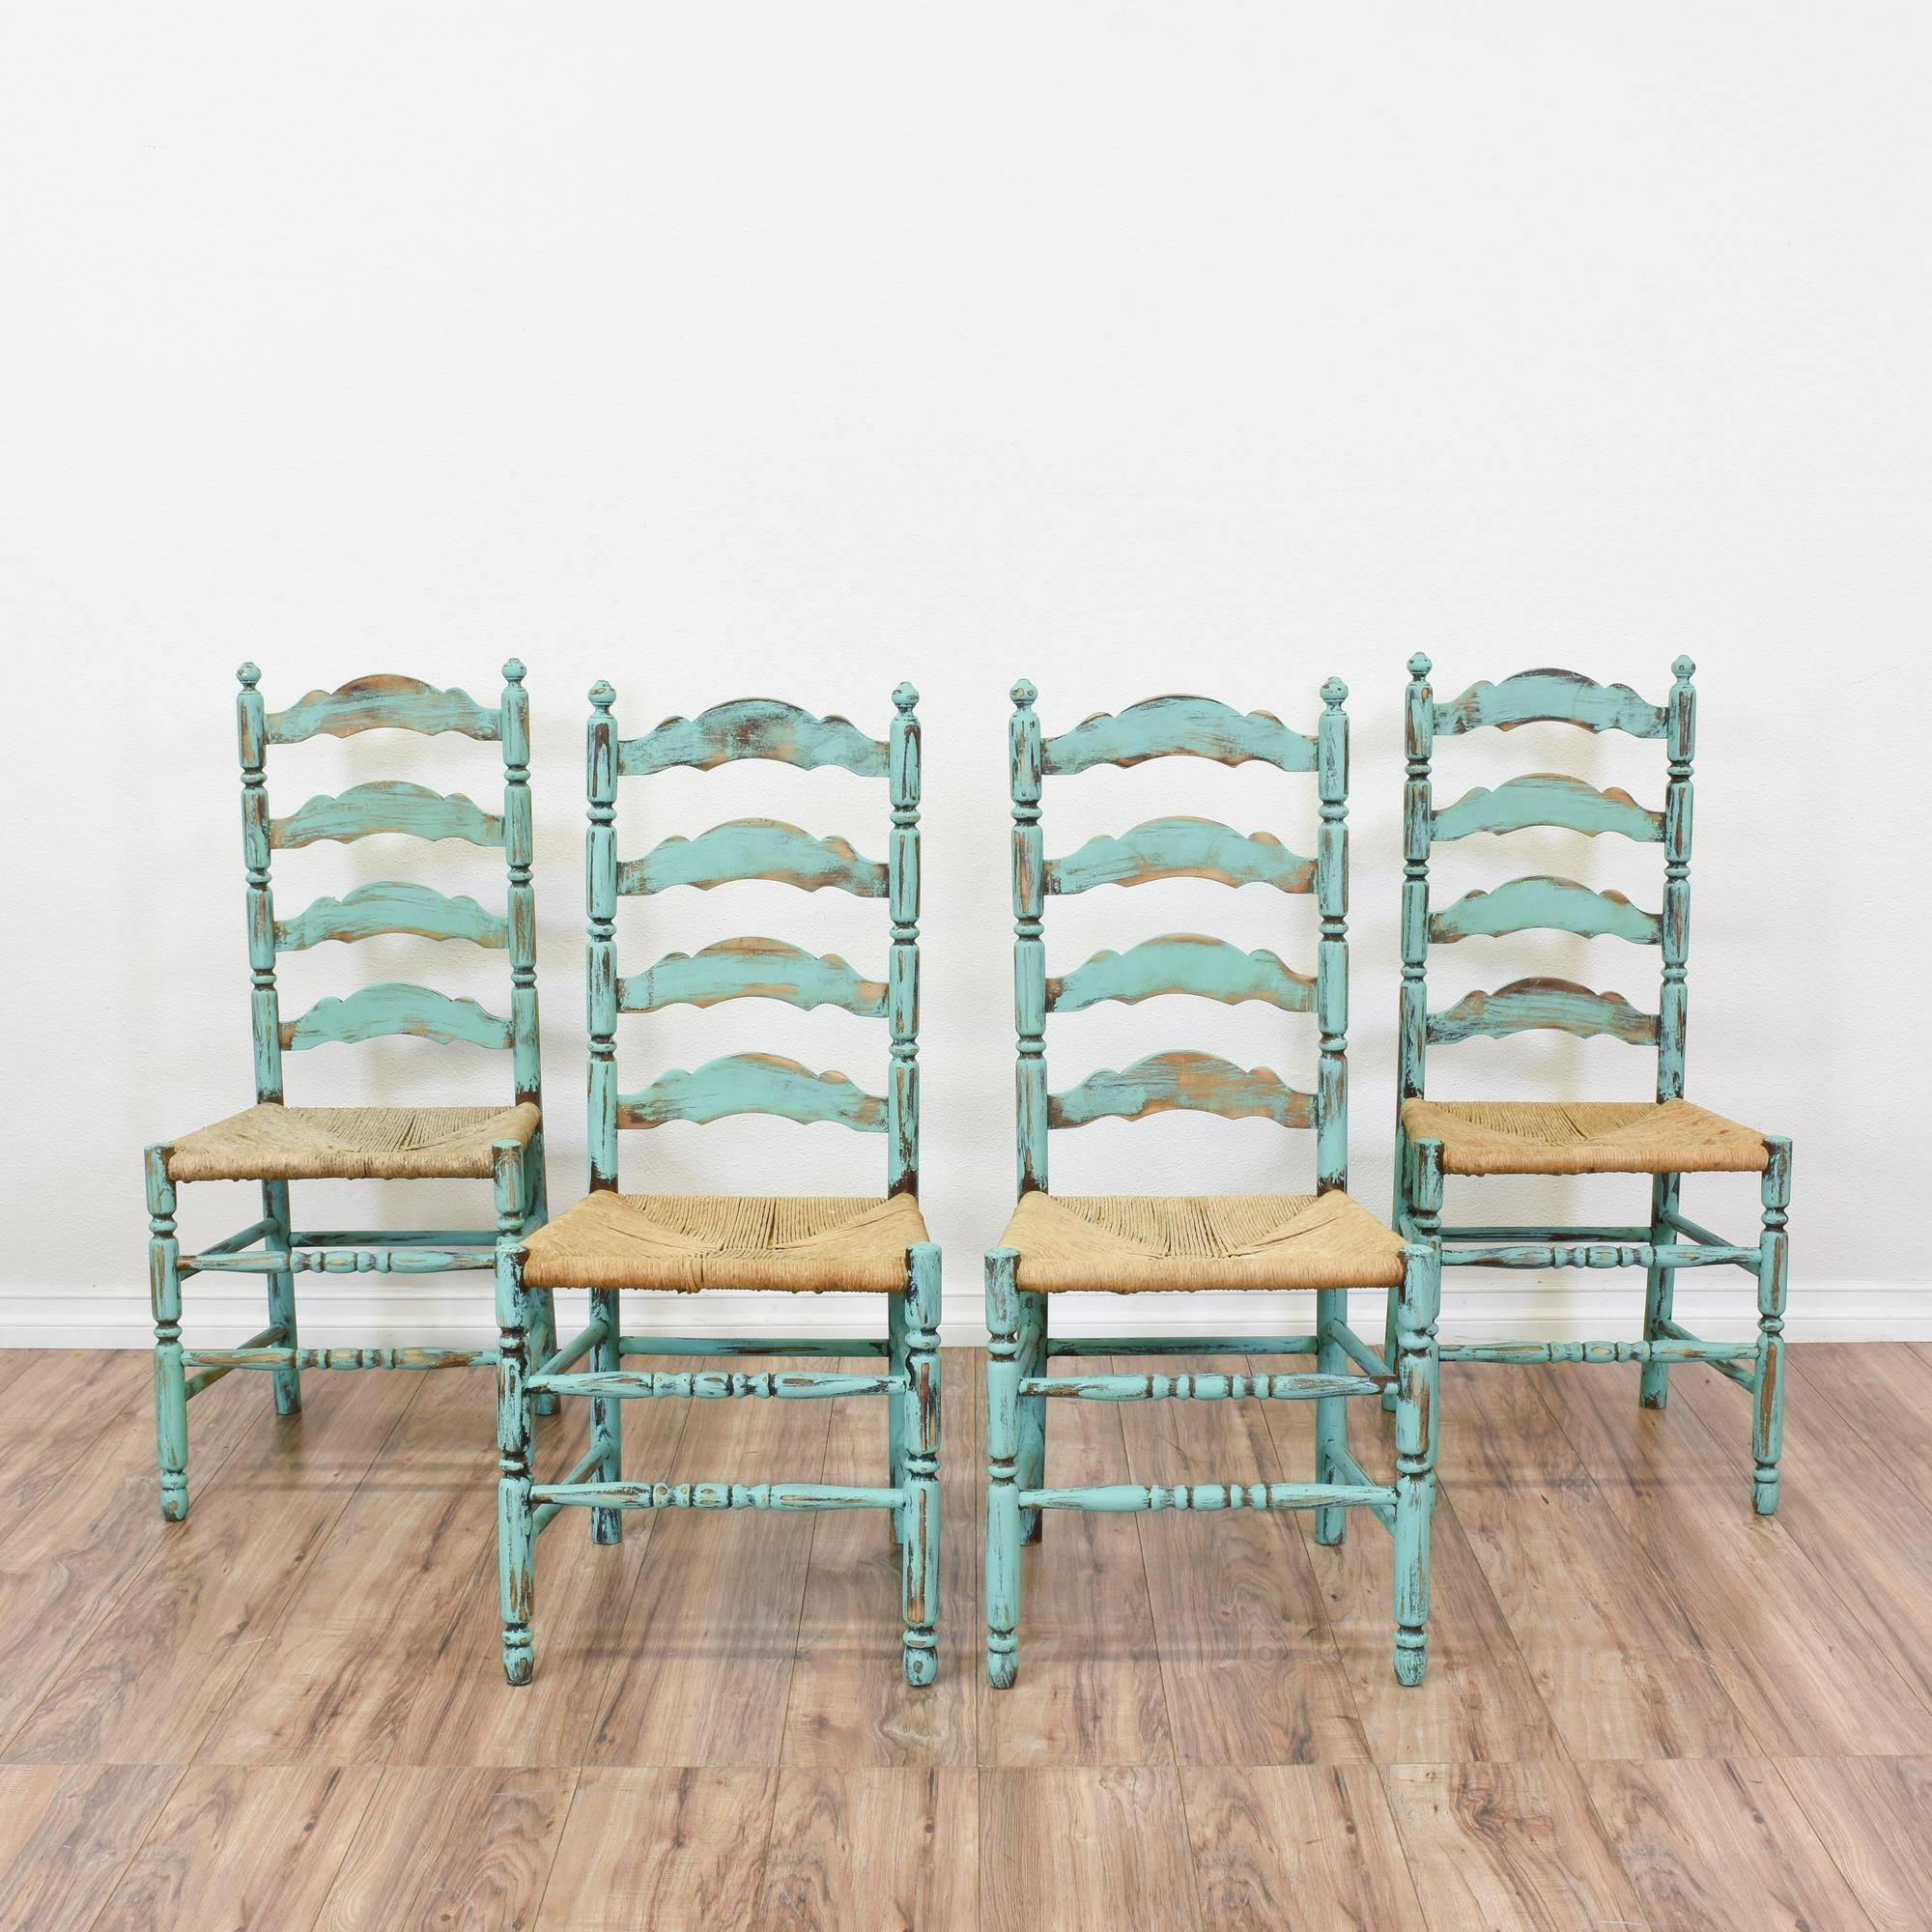 Superbe This Set Of 4 Shabby Chic Ladder Back Chairs Are Featured In A Solid Wood  With A Distressed Light Blue Chalk Paint Finish. These Dining Chairs Are In  Great ...